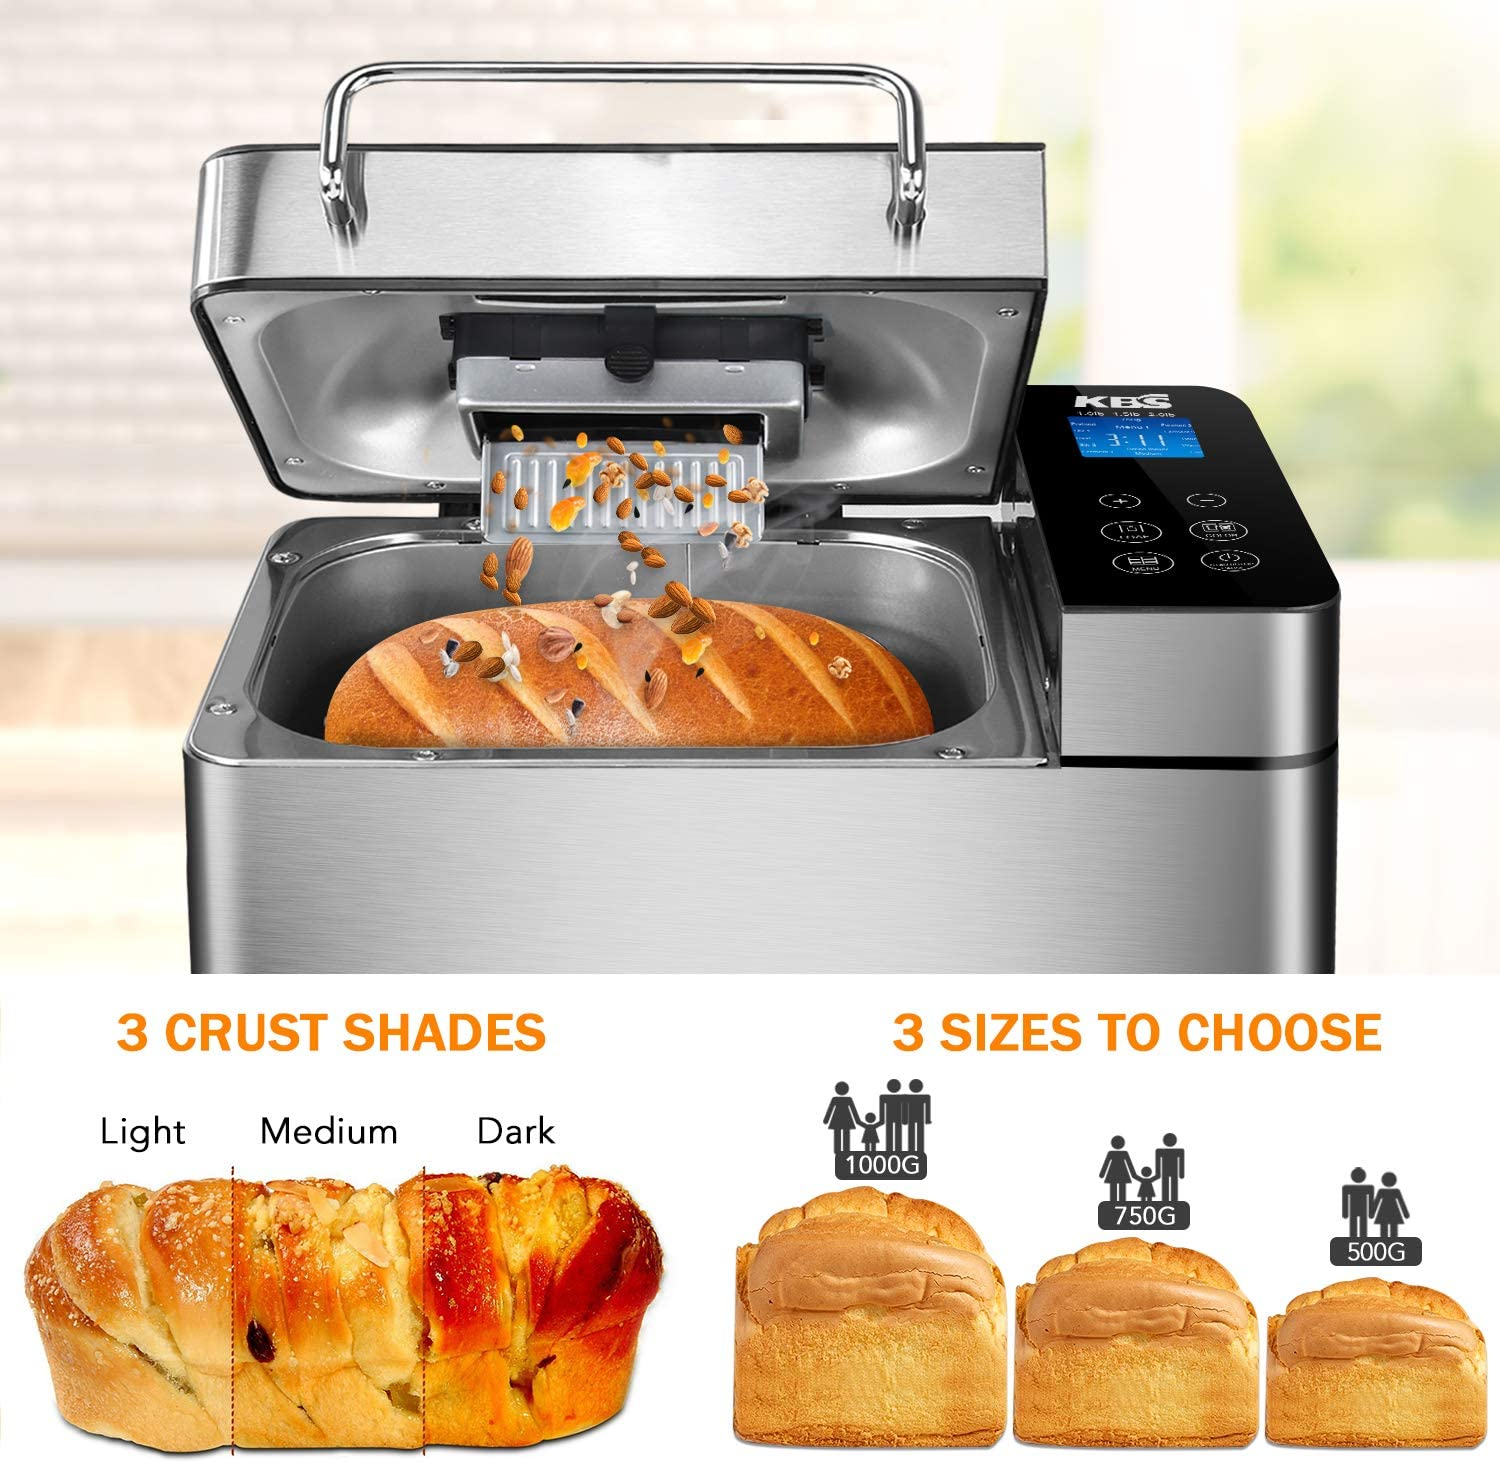 Amazon.com: KBS Máquina de pan de acero inoxidable, 1500W ...